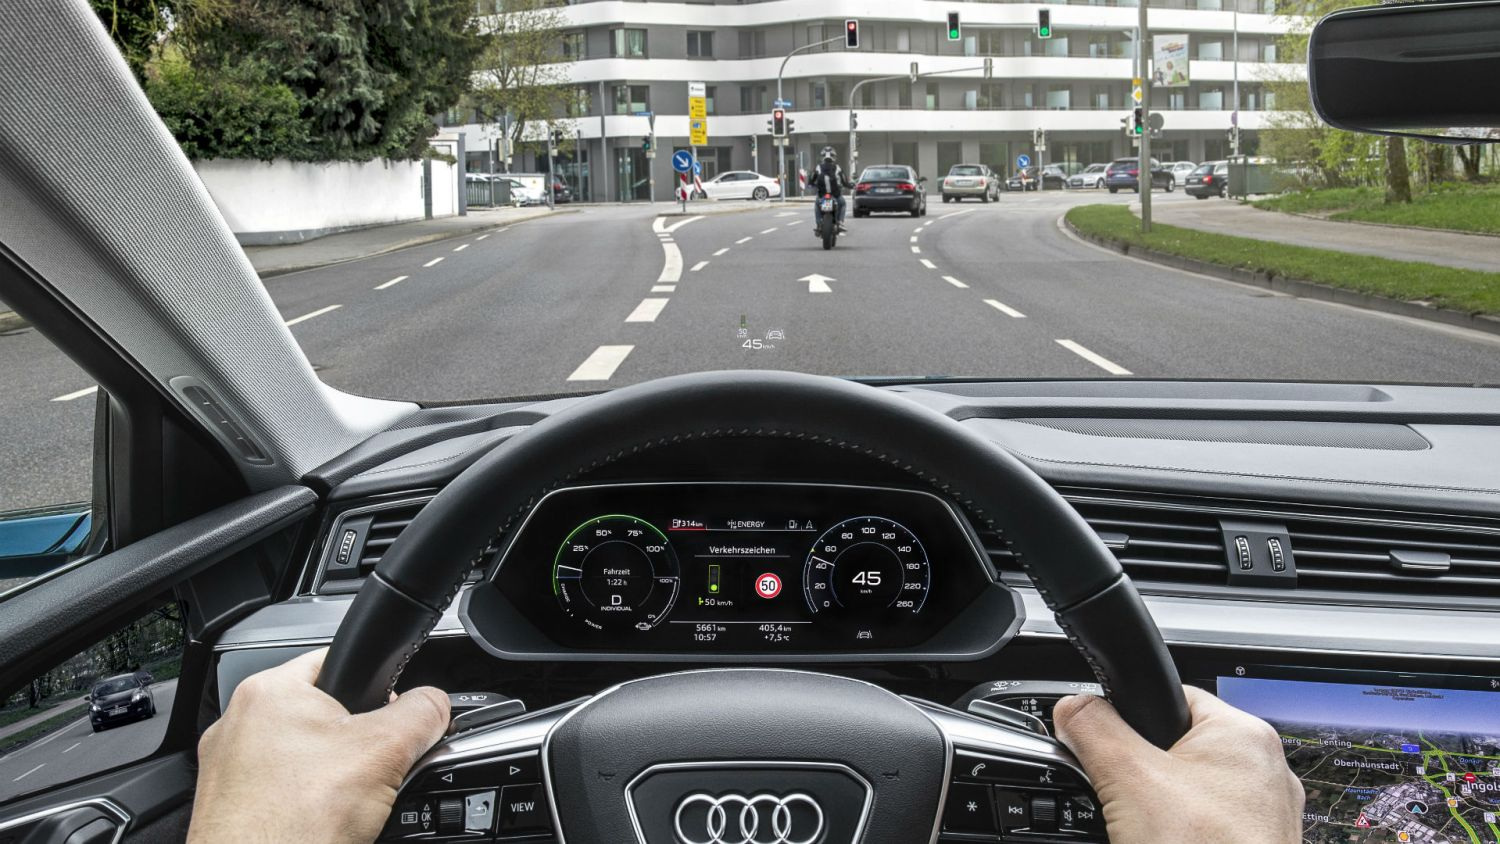 Audi traffic light service